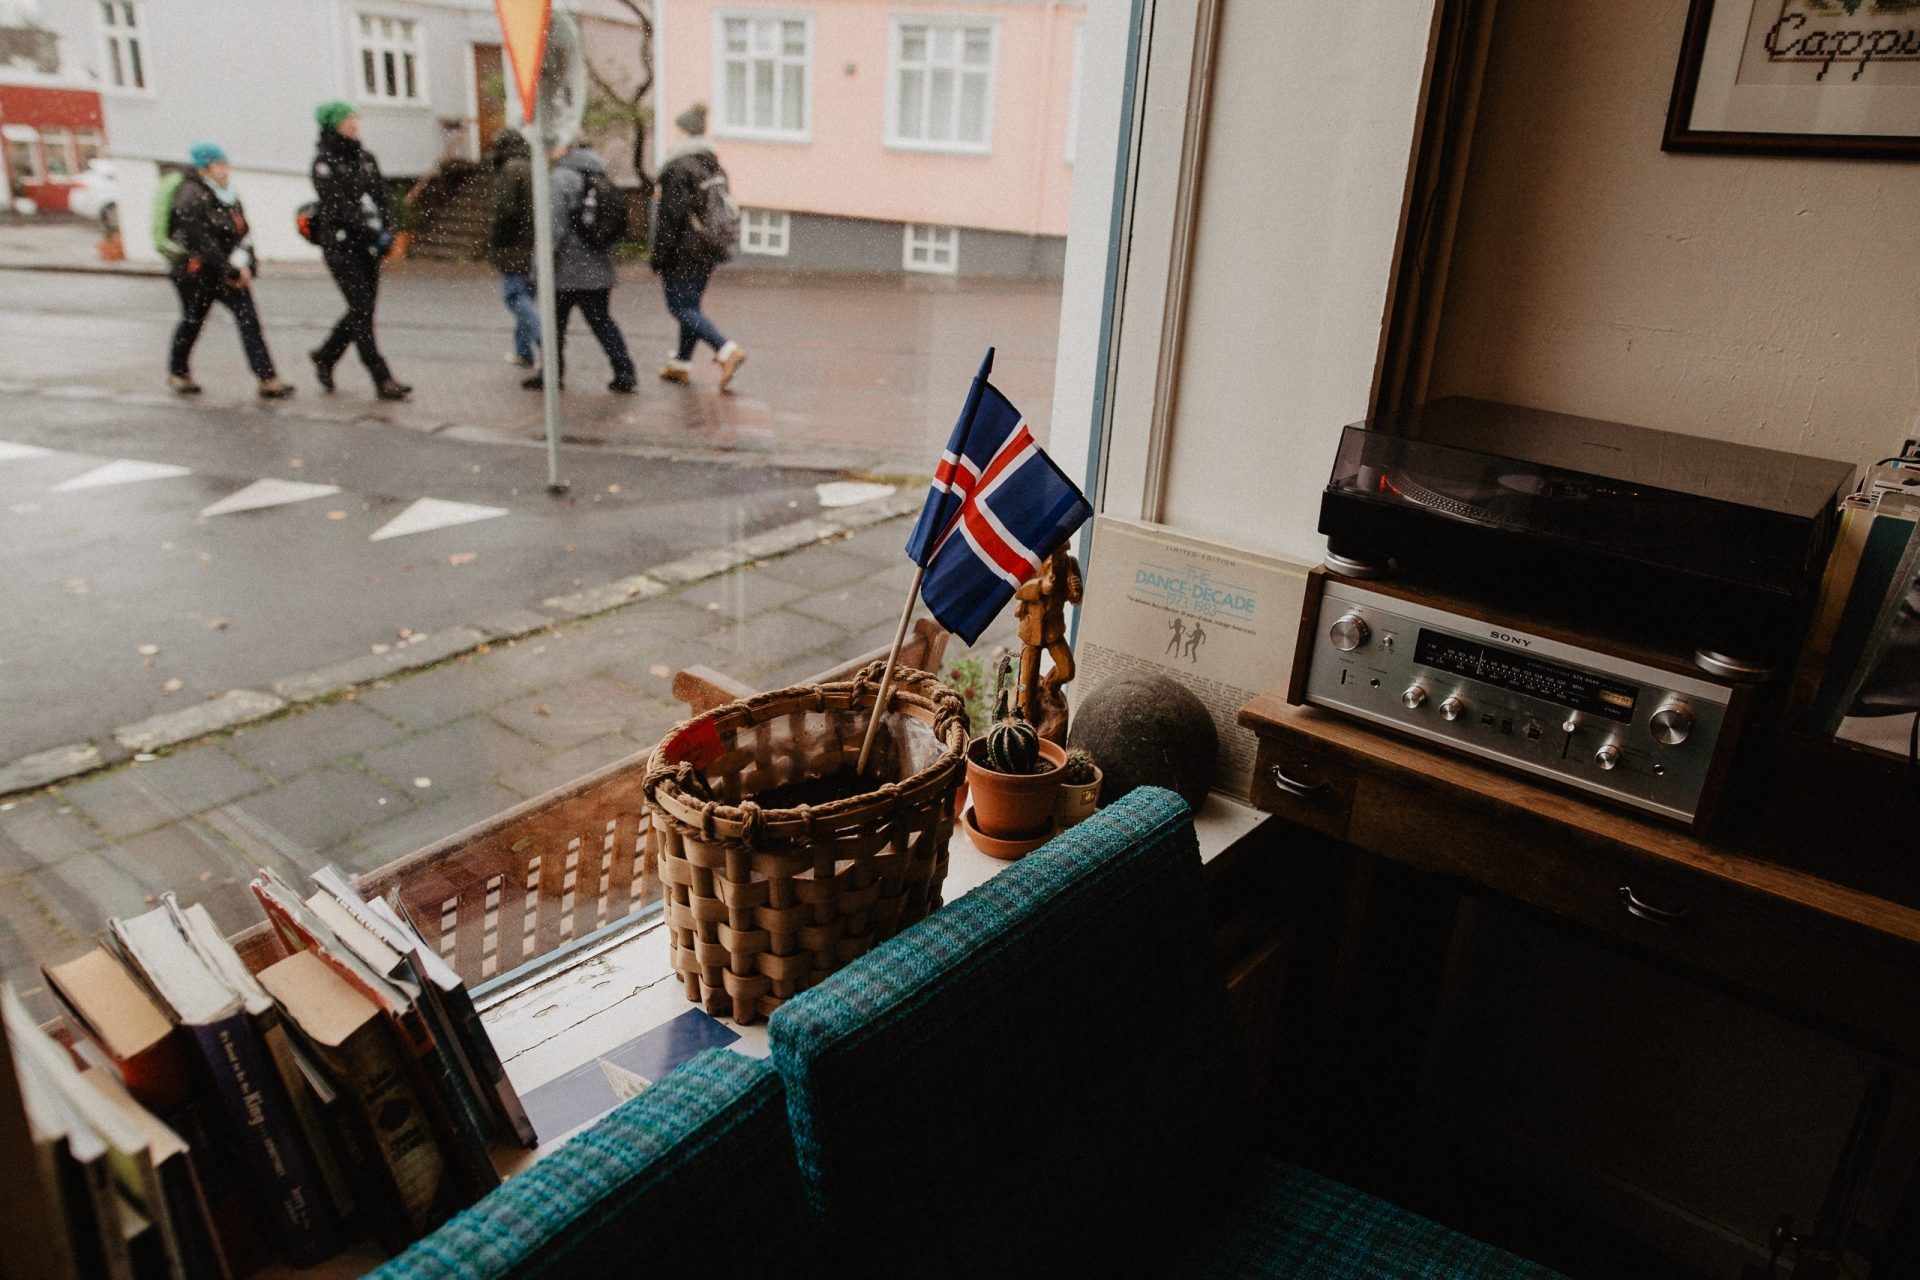 Embassy in Iceland